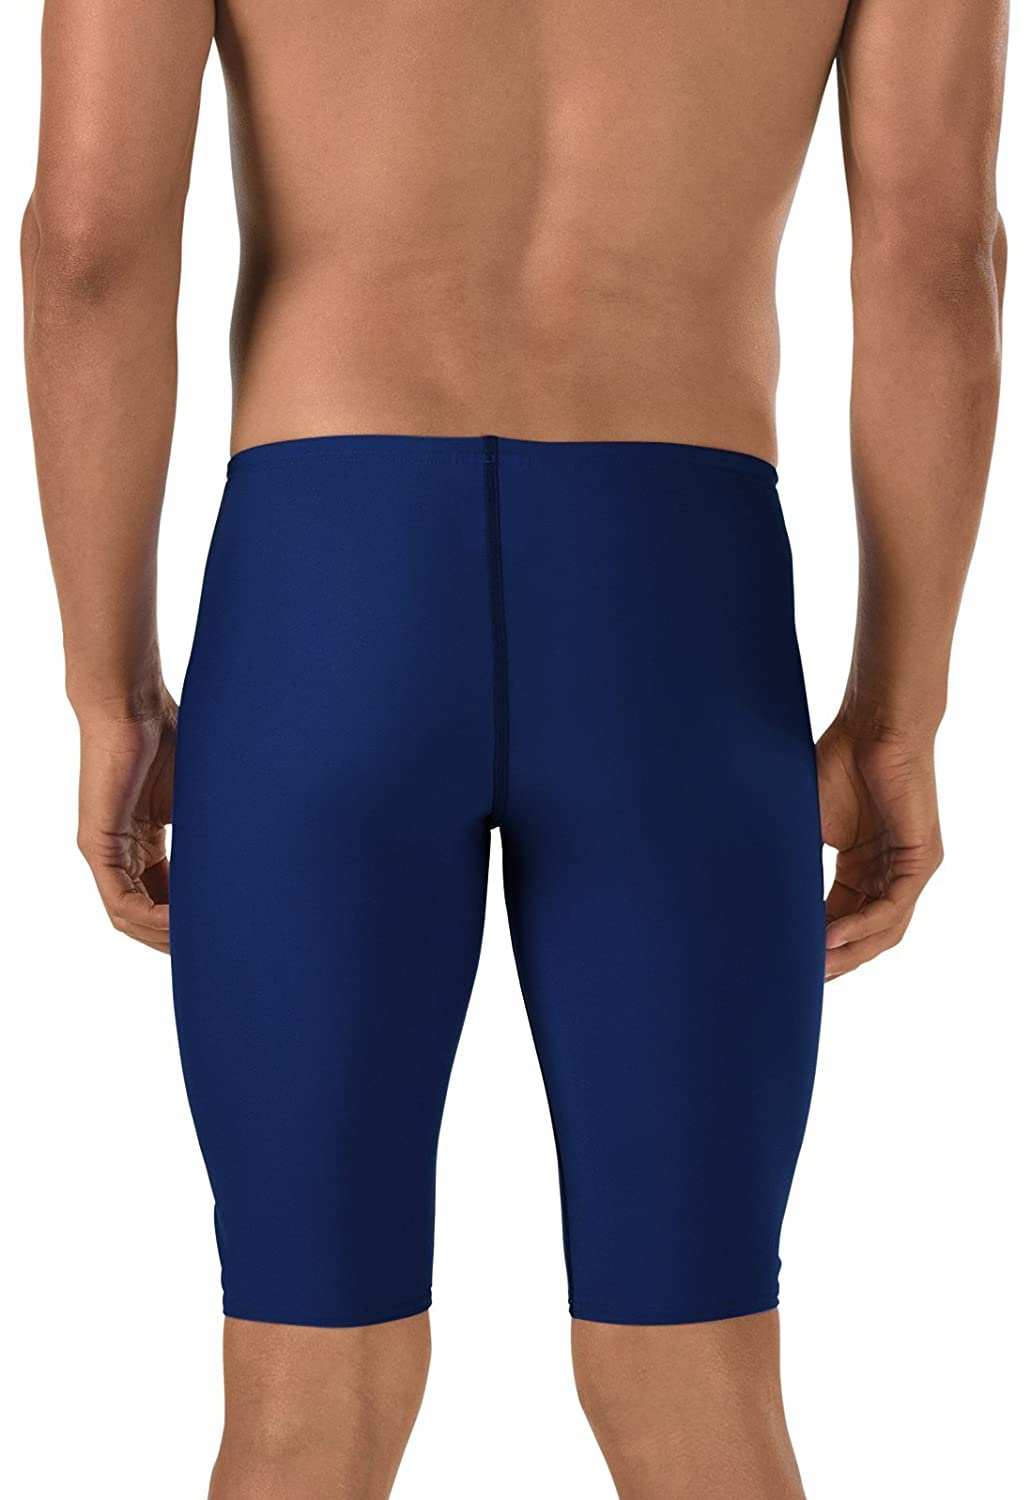 Amazon.com   Speedo Male Jammer Swimsuit - Endurance+ Polyester Solid    Athletic Swim Jammers   Sports   Outdoors 2a3b3e7f6